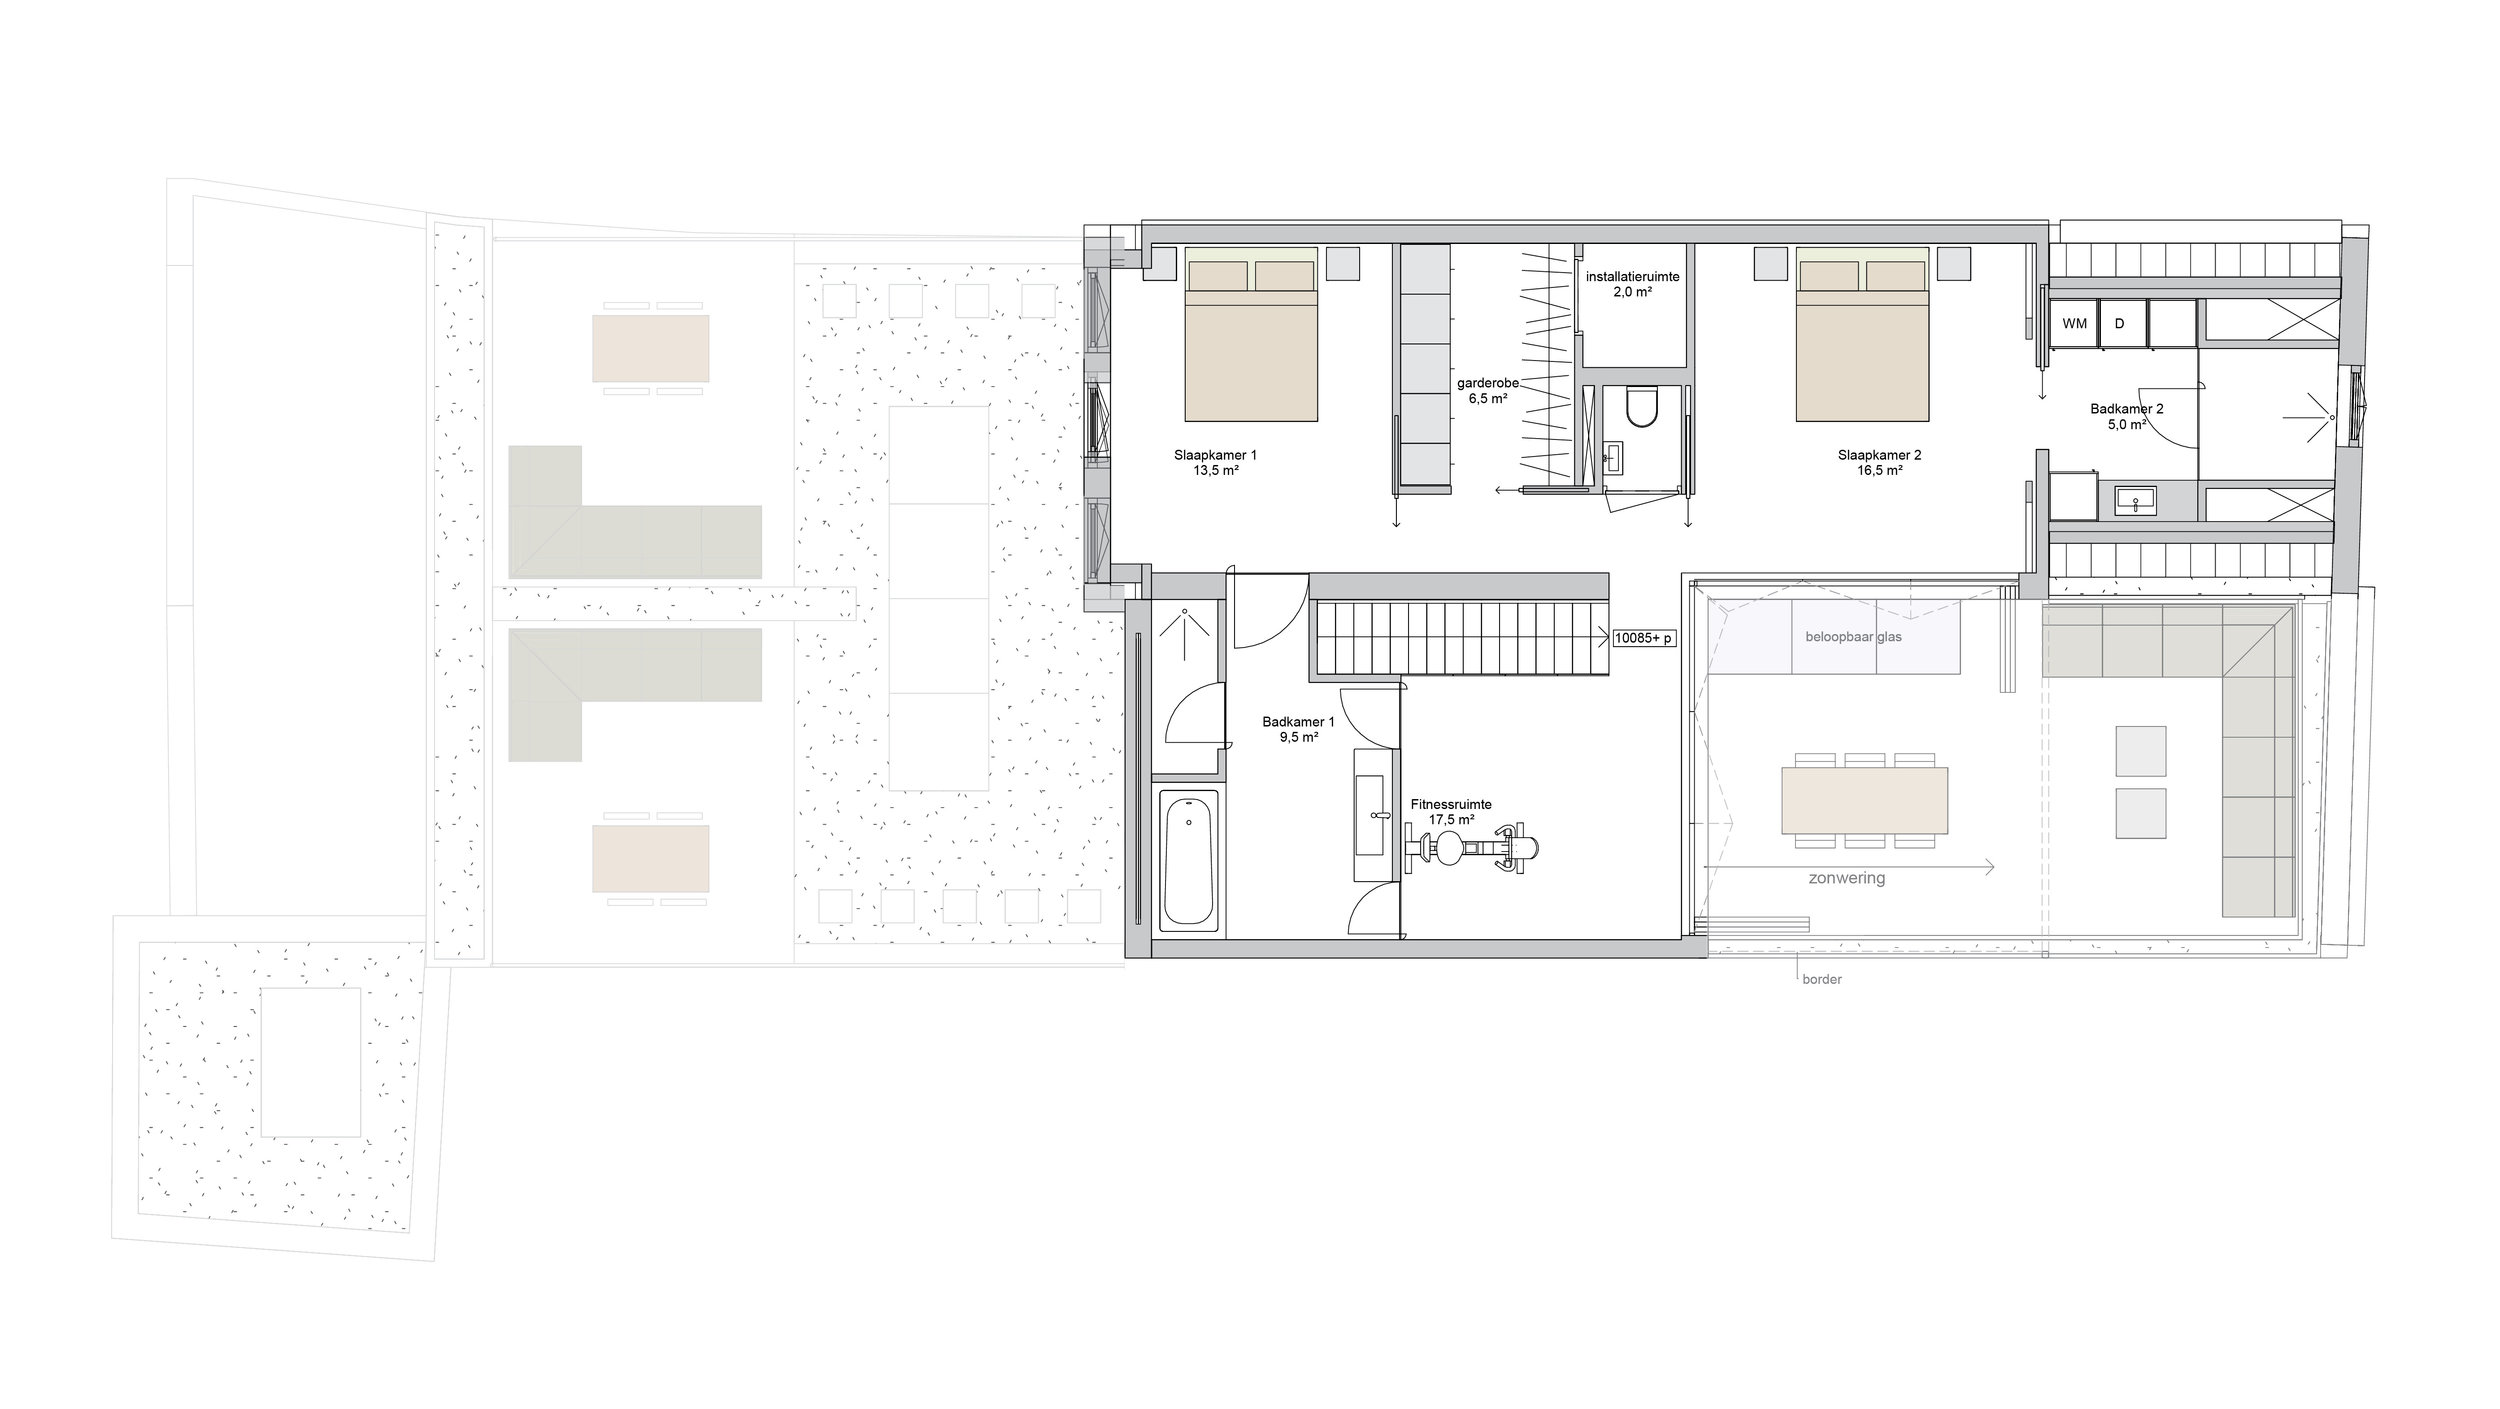 plan of the third floor, the sleeping area of the penthouse with the master bedroom with walk in closet and en suite bathroom and the guest bedroom with its own bathroom.